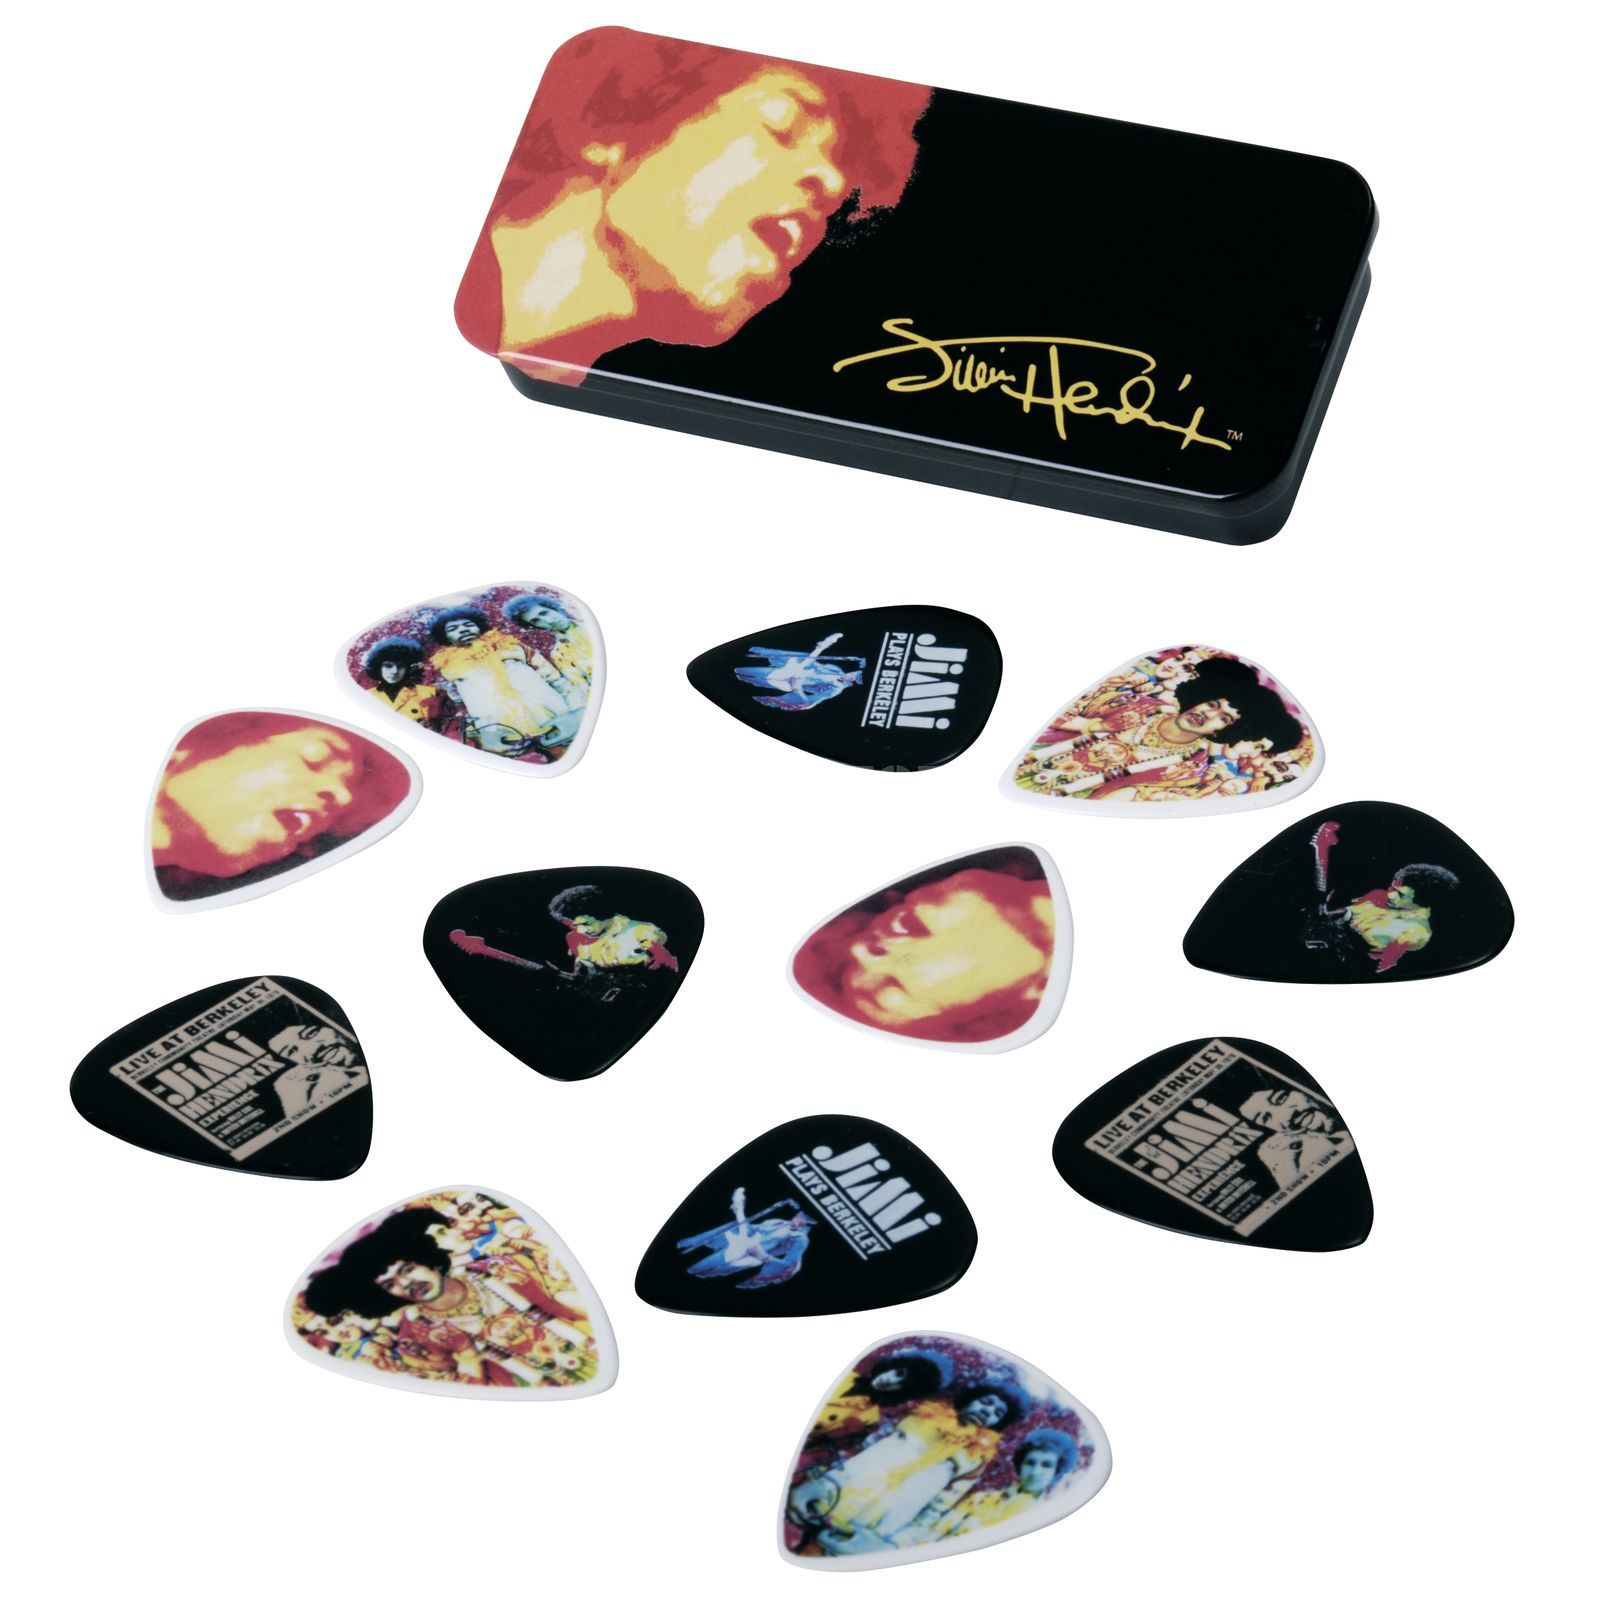 Dunlop Jimi Hendrix Picks - Electric Ladyland heavy - Box of 12 Produktbillede